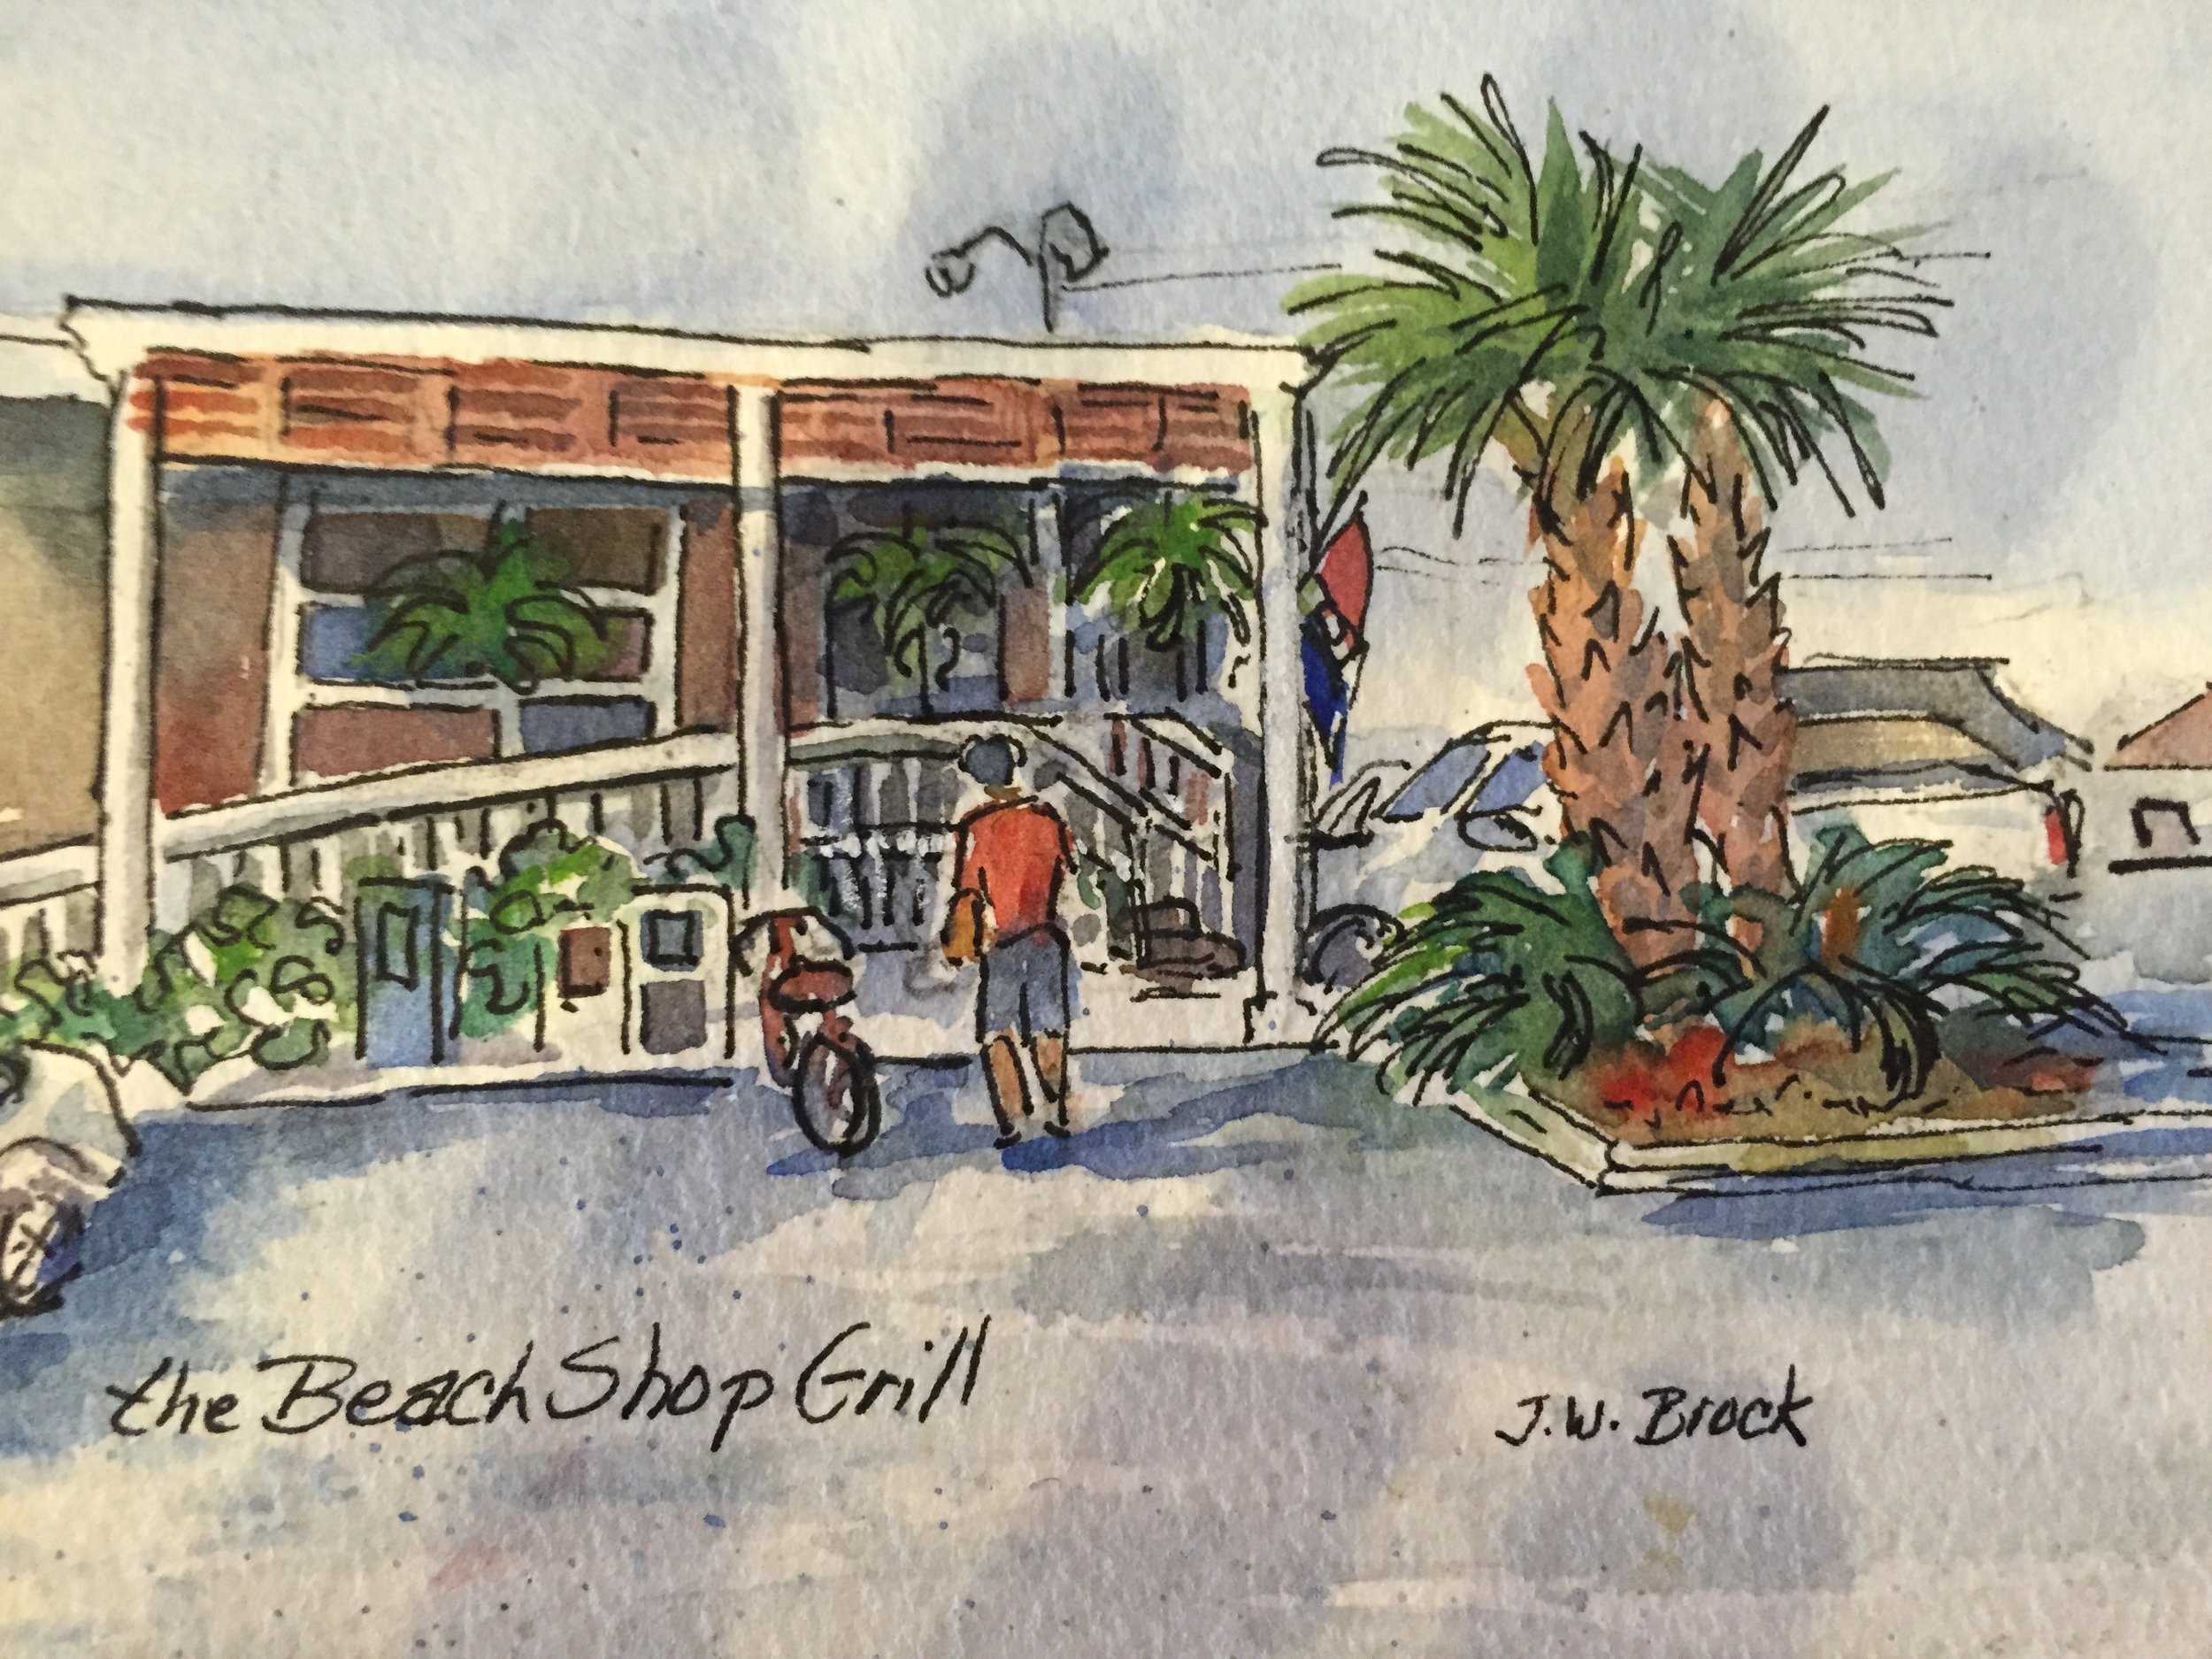 Beach Shop Grill- Ink and Watercolor